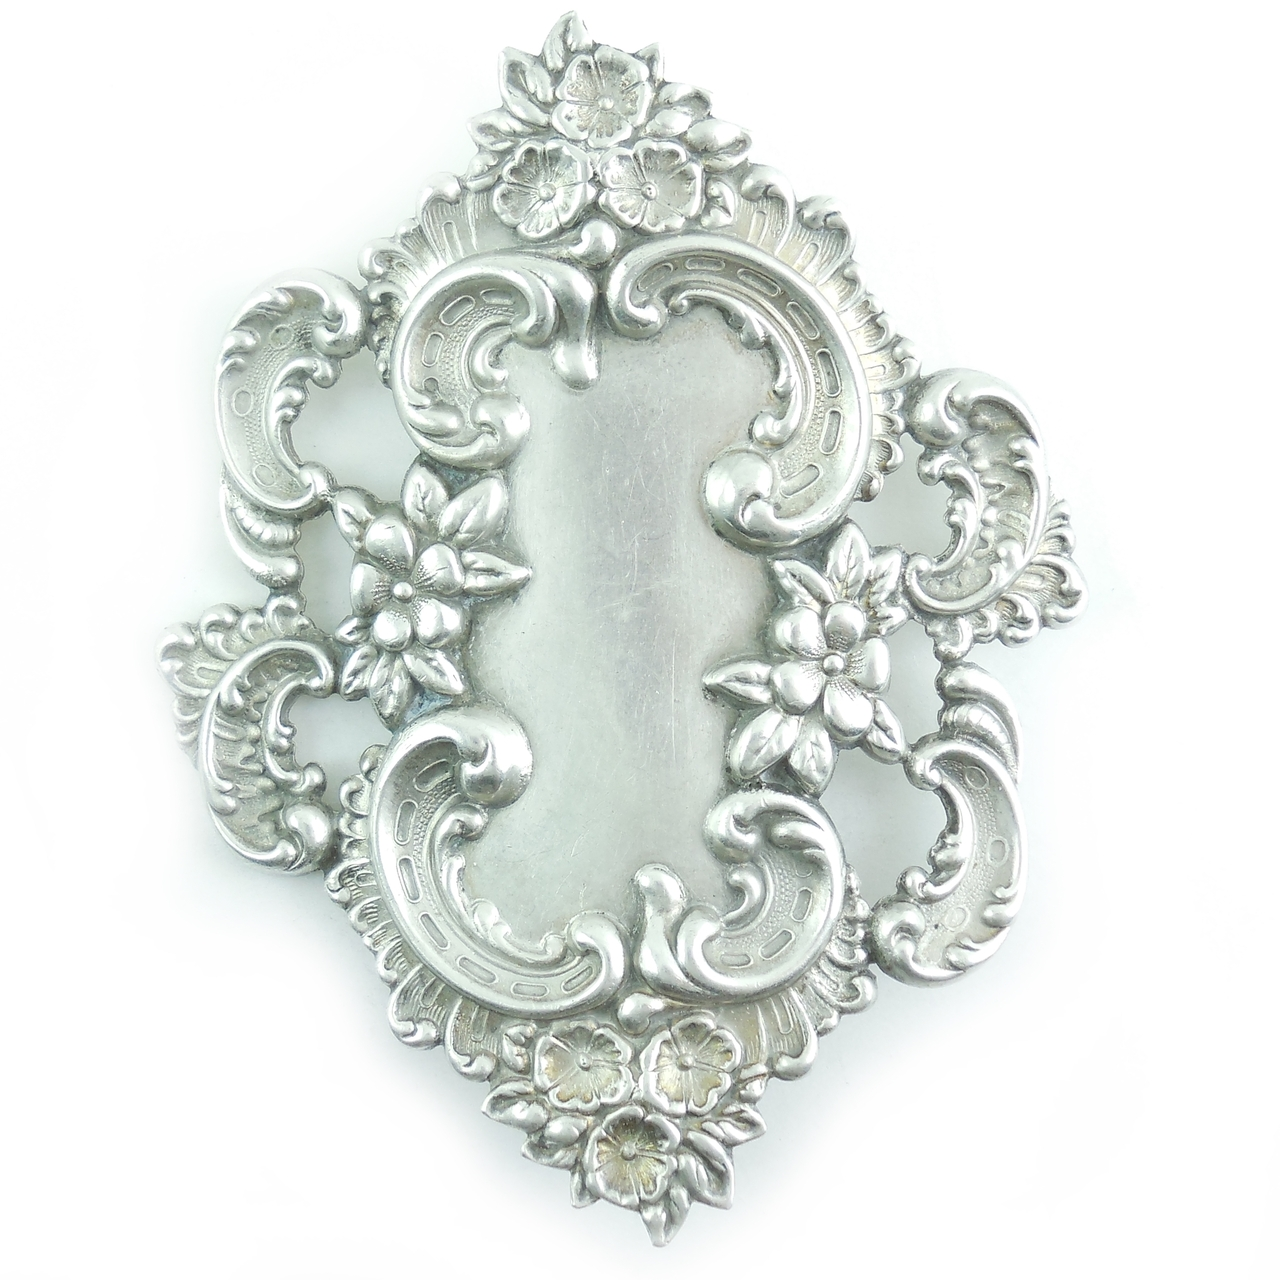 Antique Gorham Whiting Buttercup Edwarian Sterling Silver Sash Dress Buckle